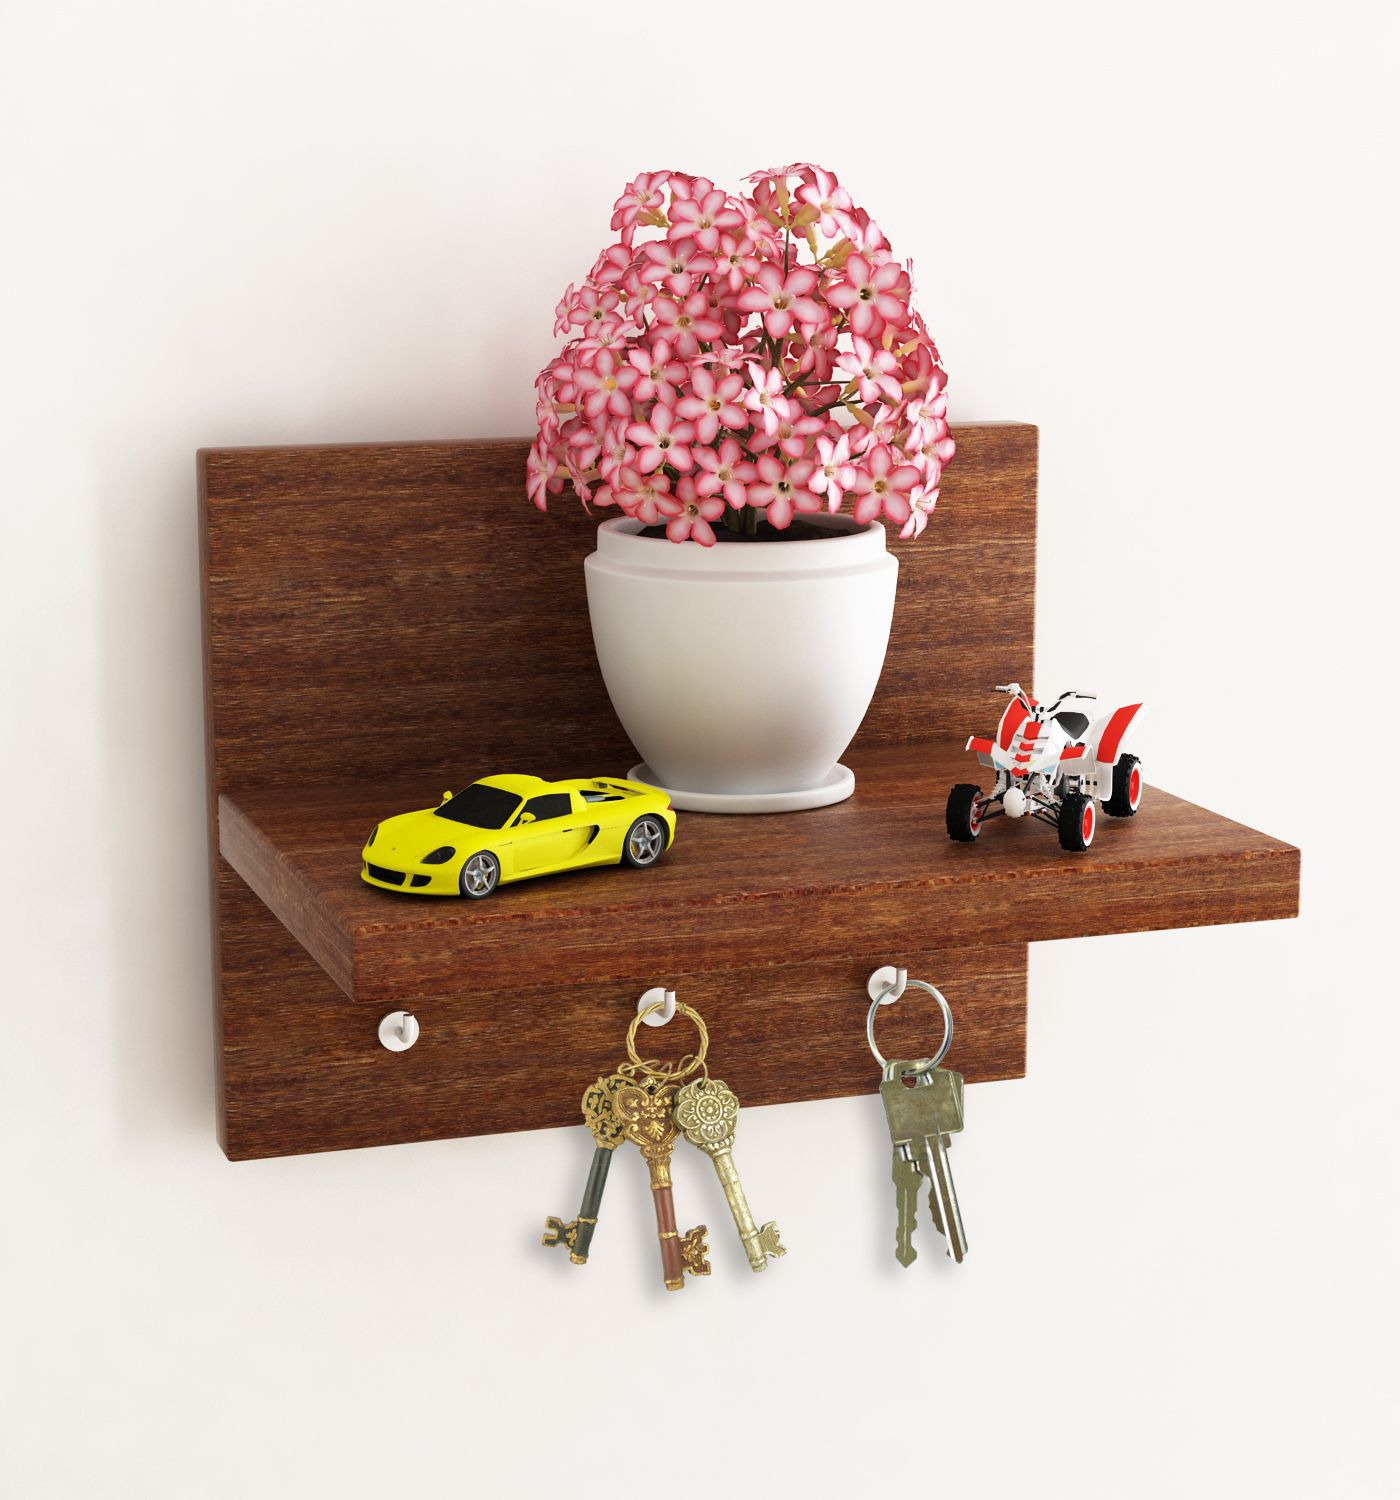 Home Sparkle MDF Wall Shelf Cum Key holder For Wall Décor -Suitable For Living Room/Bed Room (Designed By Craftsman)